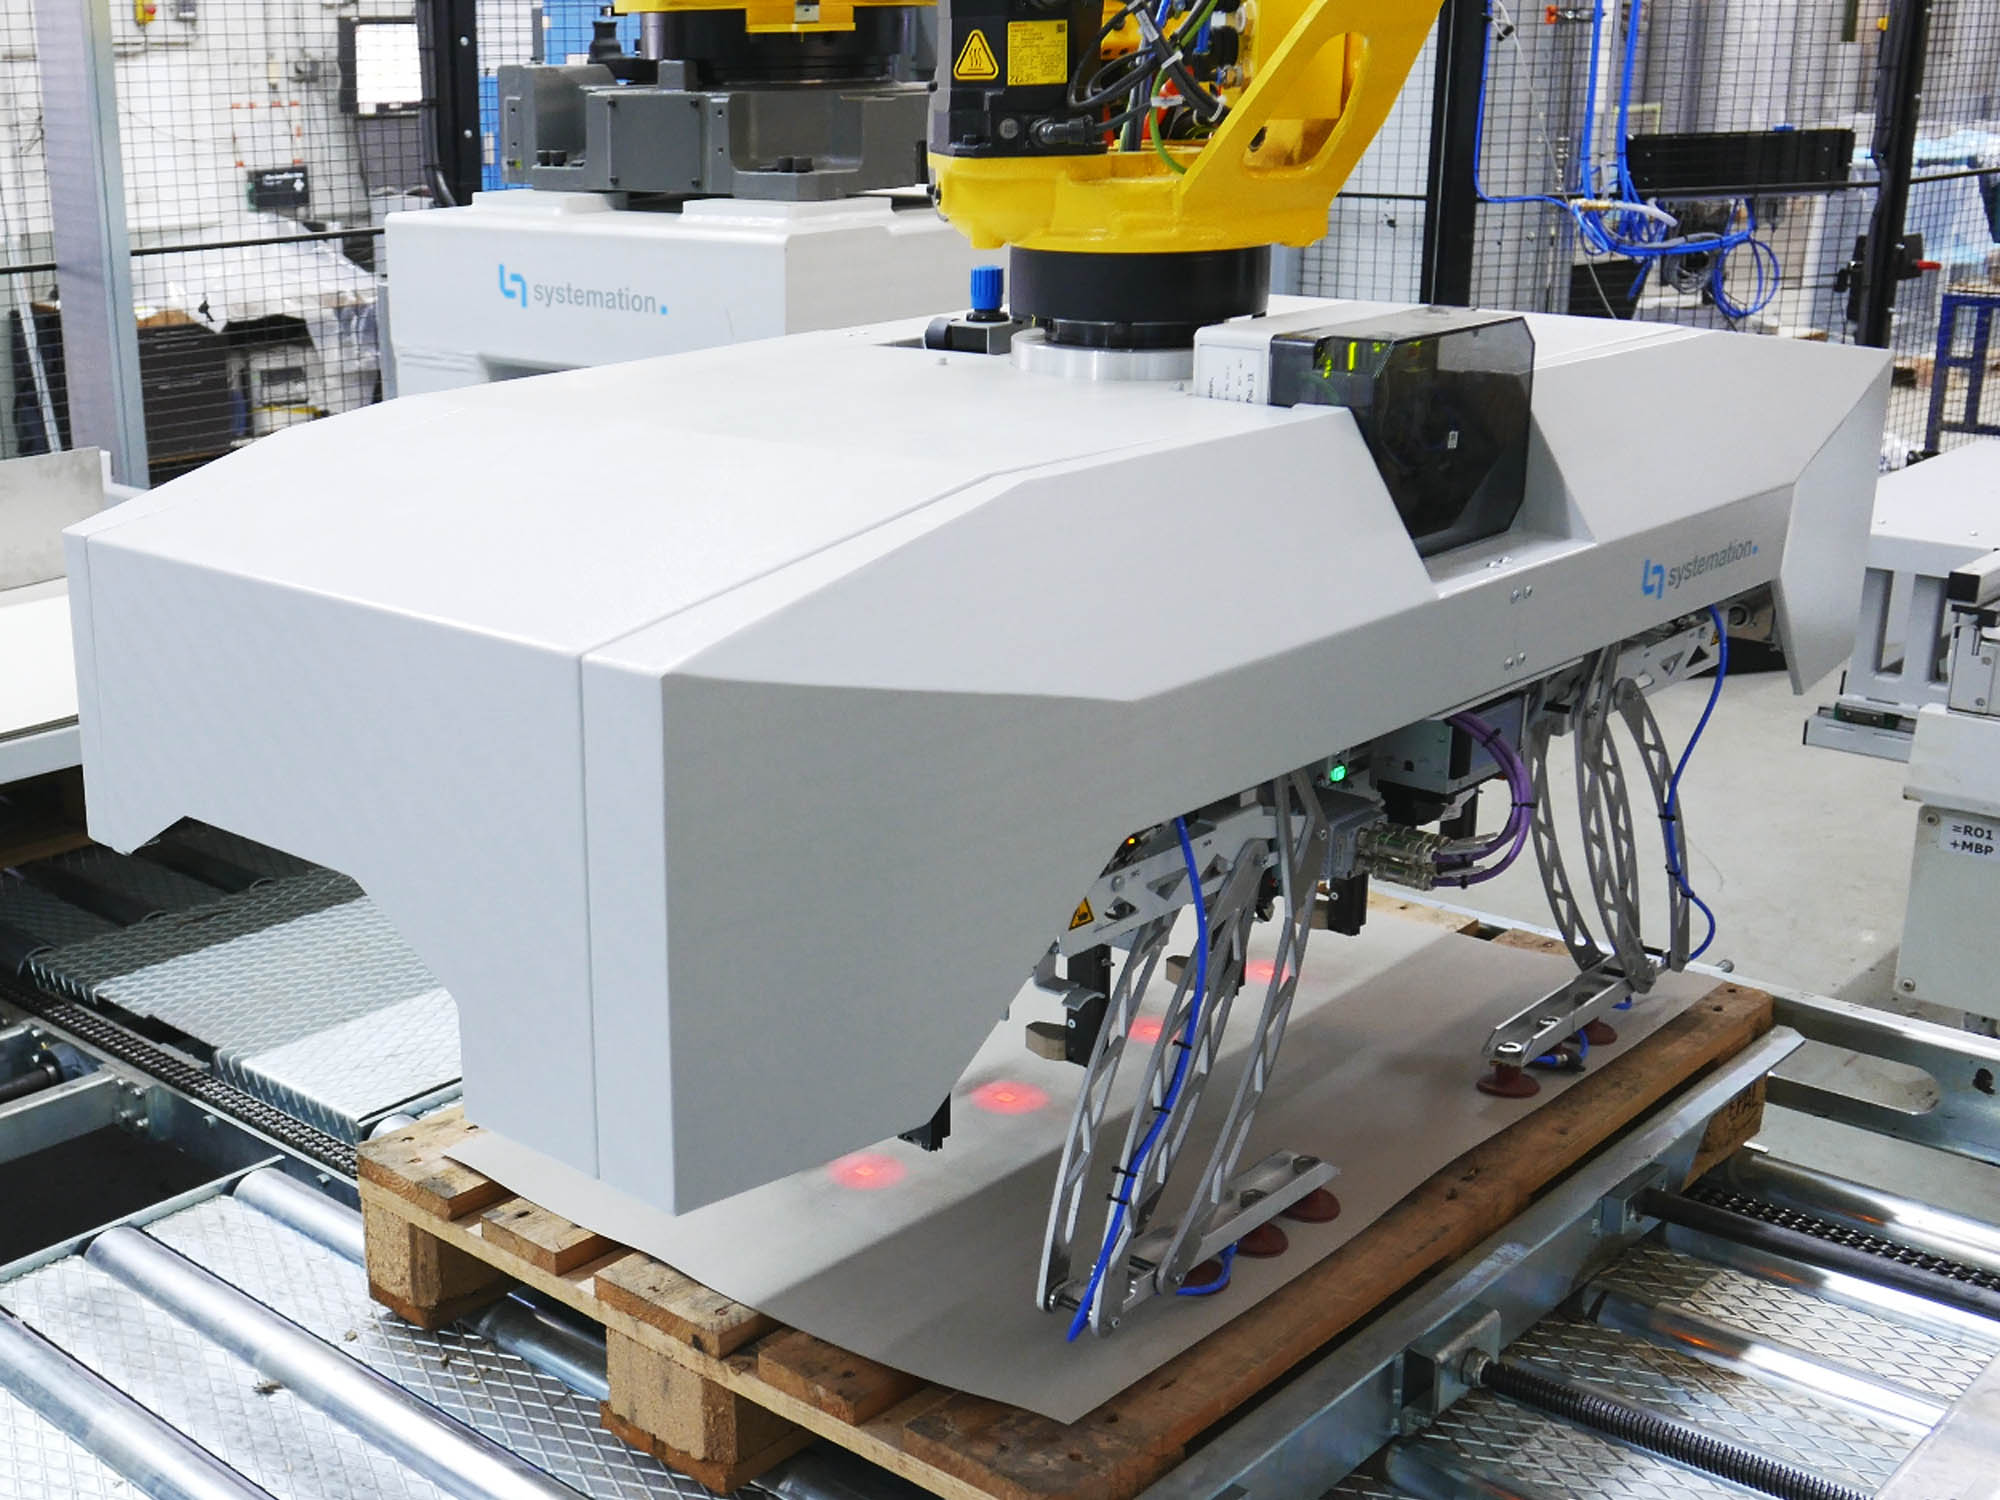 Palletti Robot Interface